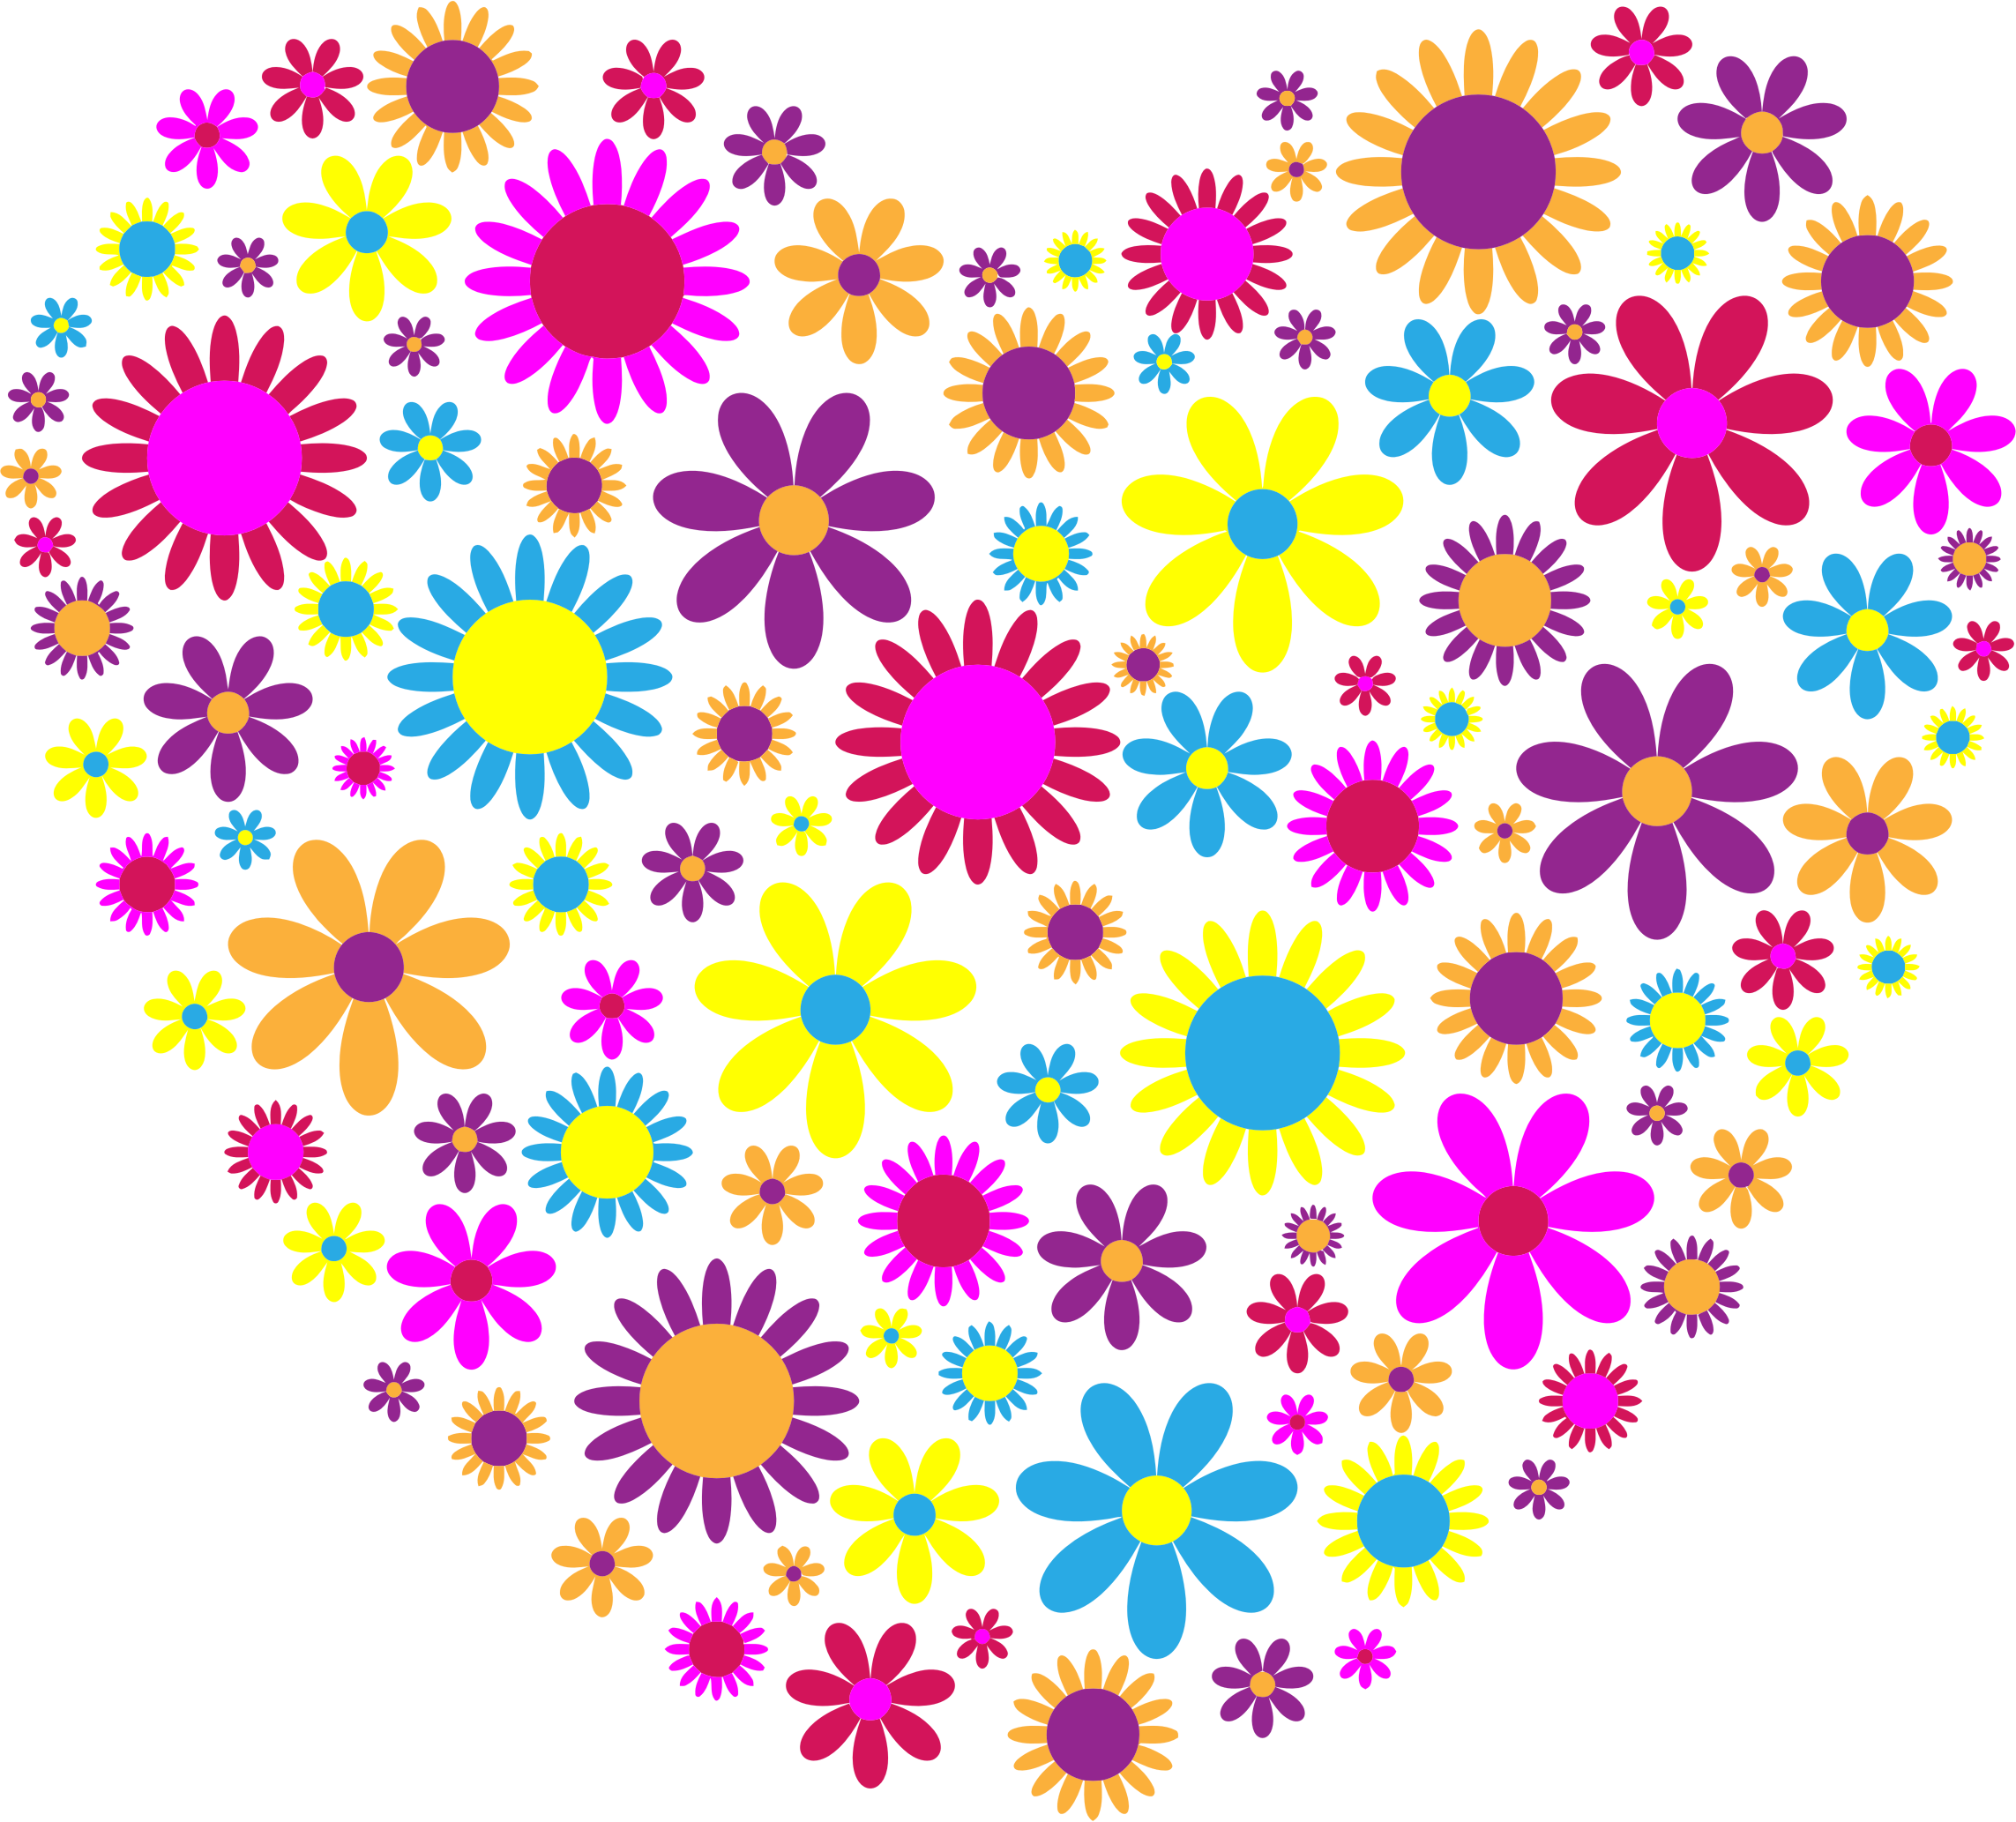 Floral Heart by GDJ